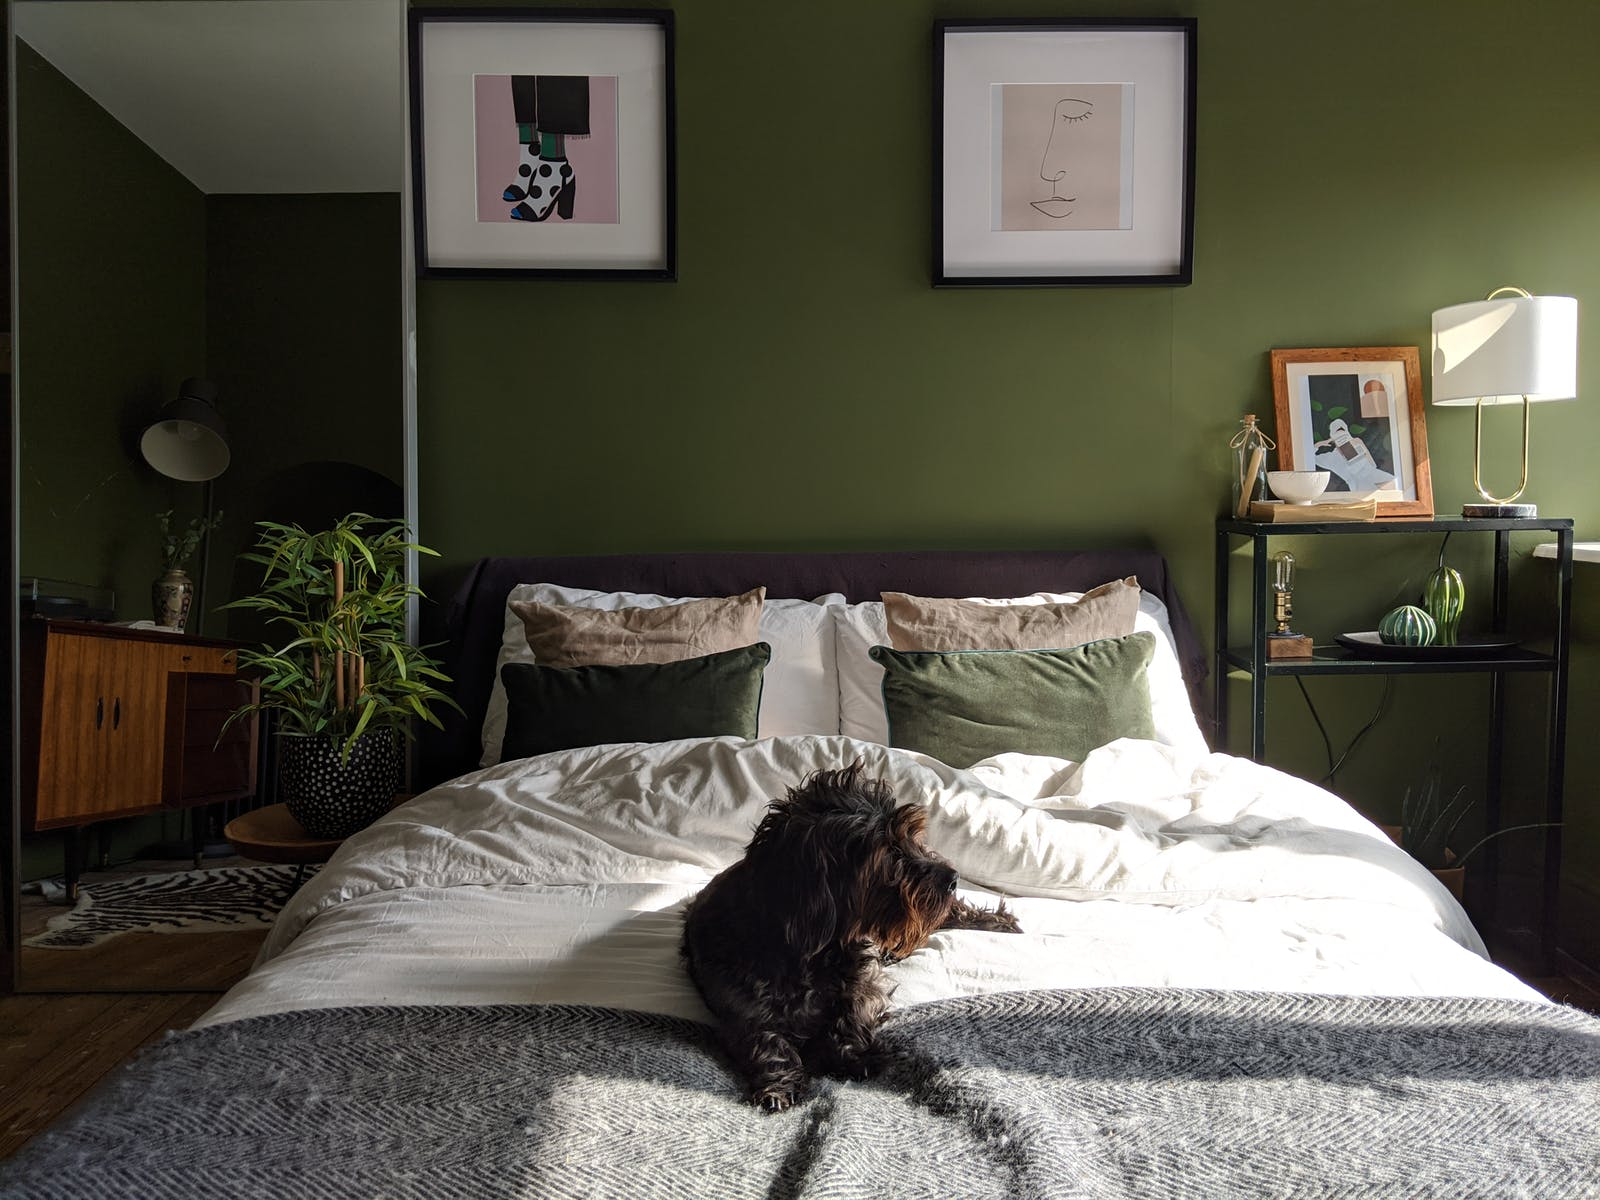 Dog on double bed in a green bedroom painted in Lick Green 05